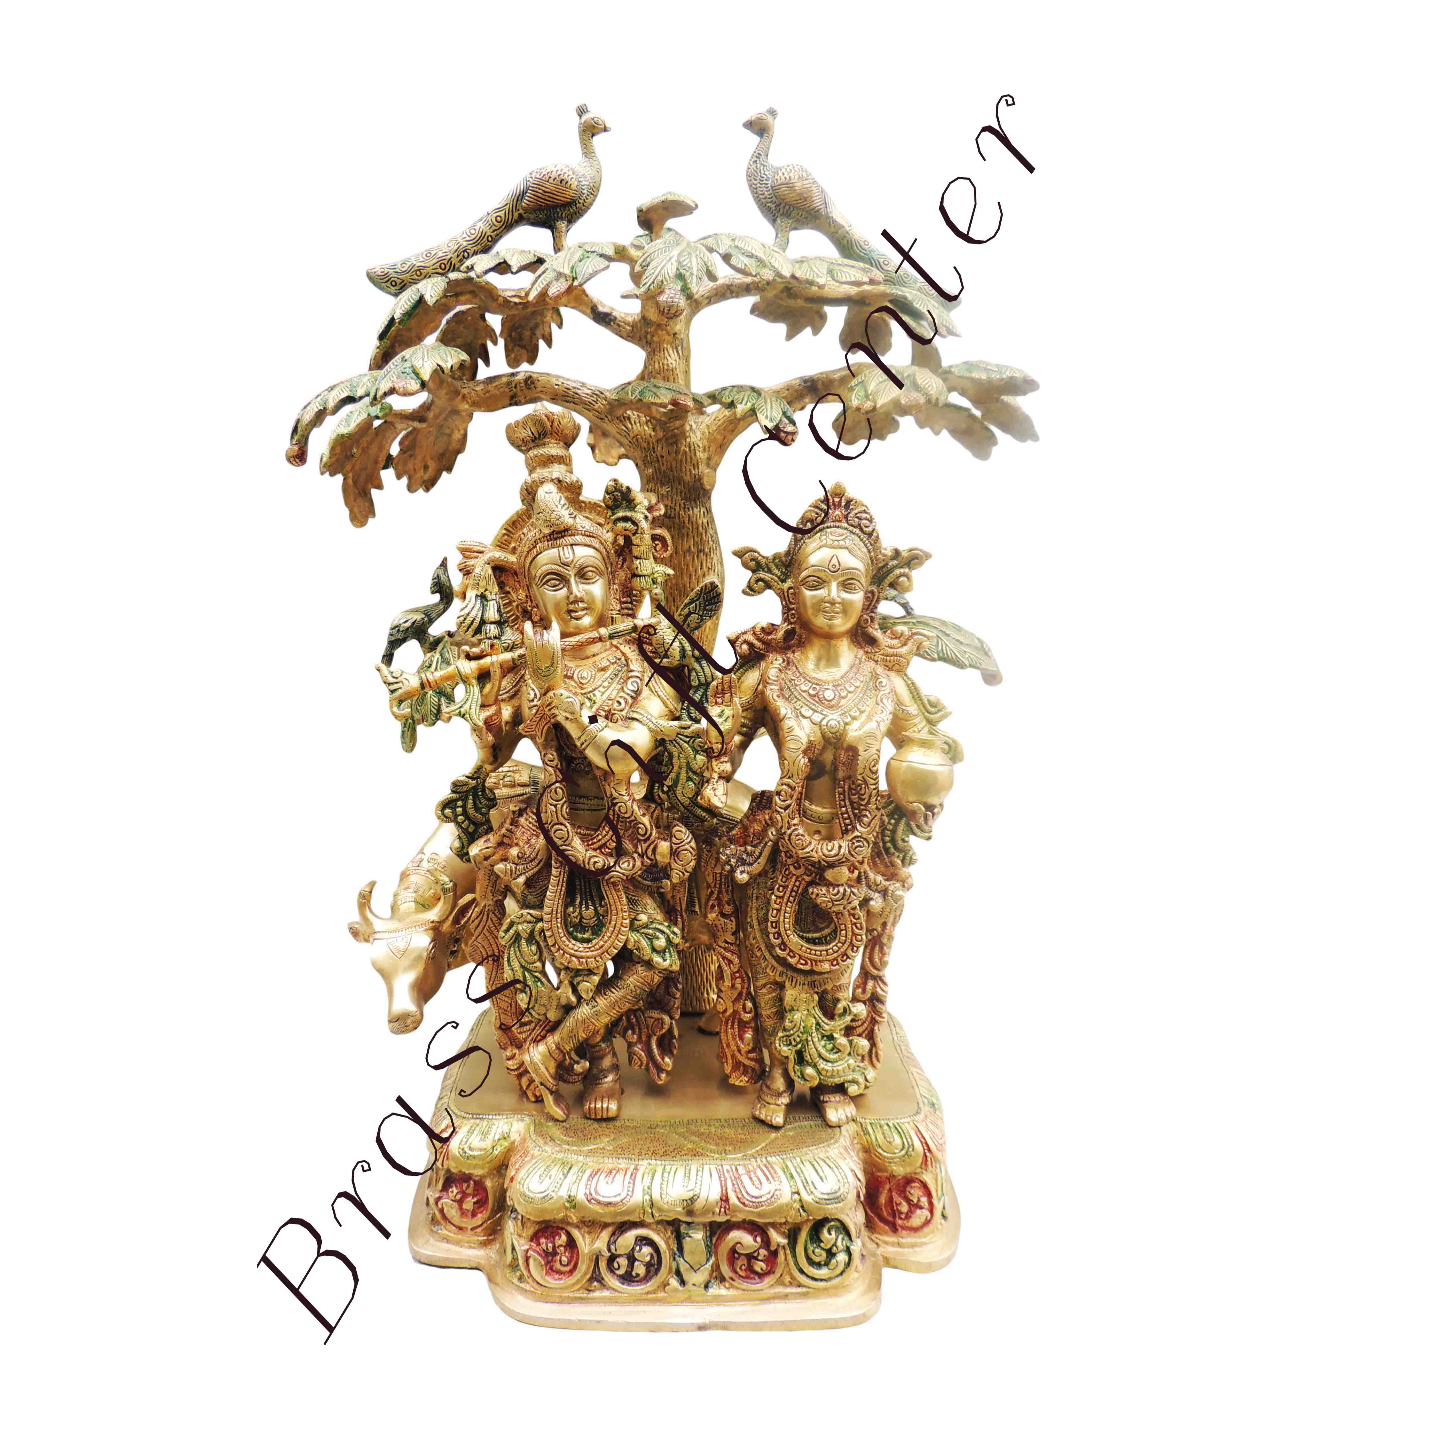 Brass Radha Krishna Cow Under Tree Staute Idol Murti in Multicolour lacquer finish- 17.5*10*24 Inch  (BS500)